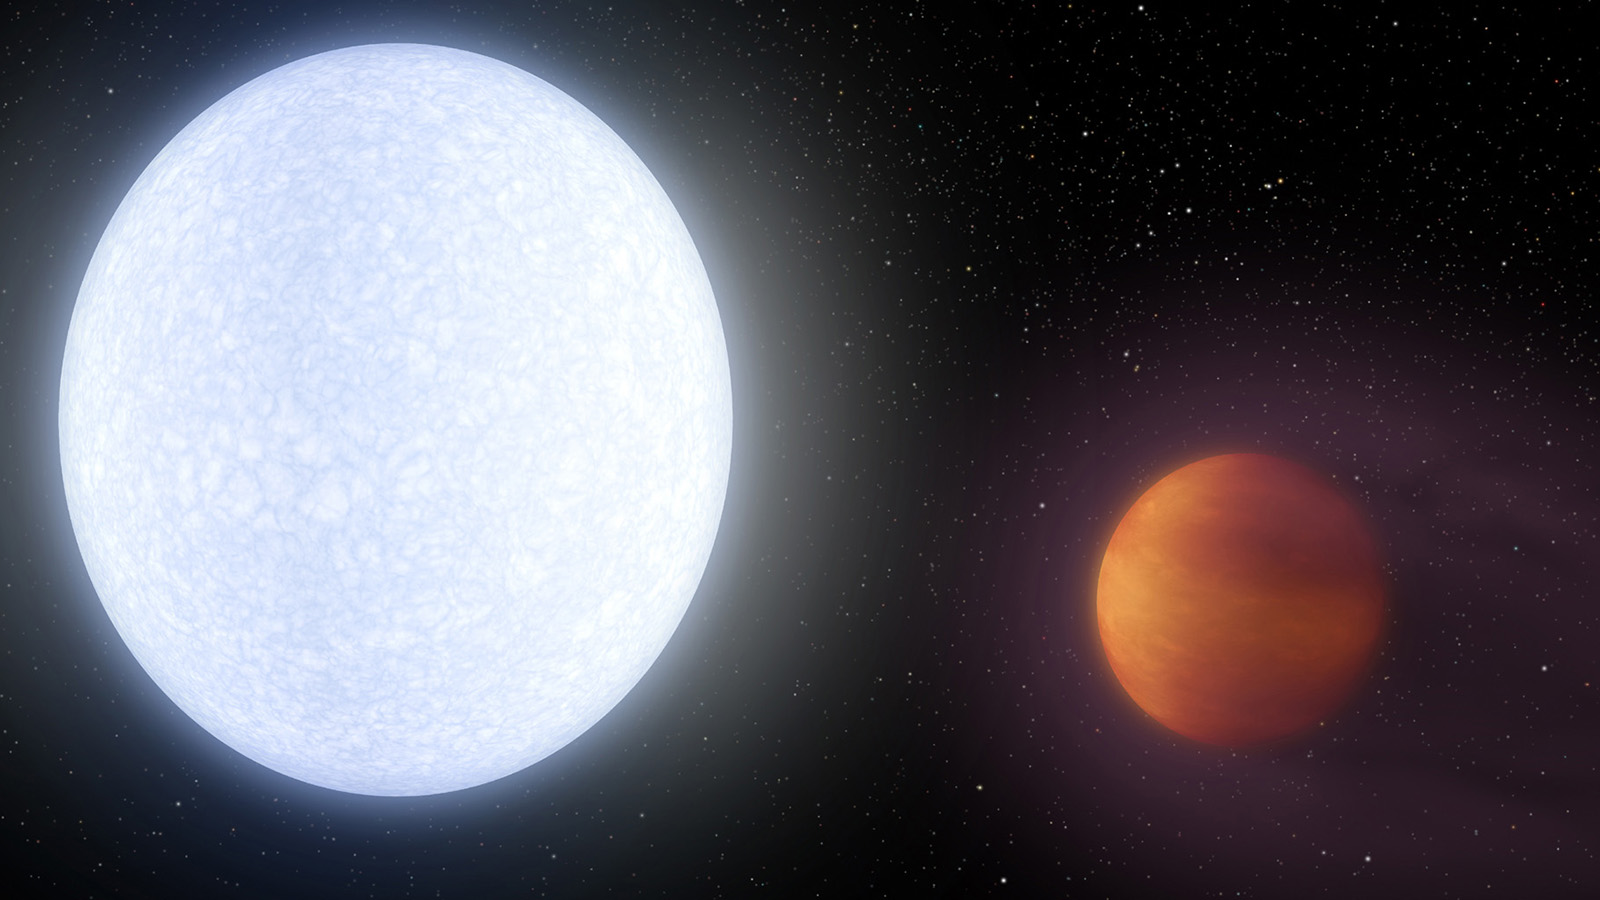 slide 2 - A hot Jupiter exoplanet is seen in an artist's illustration.